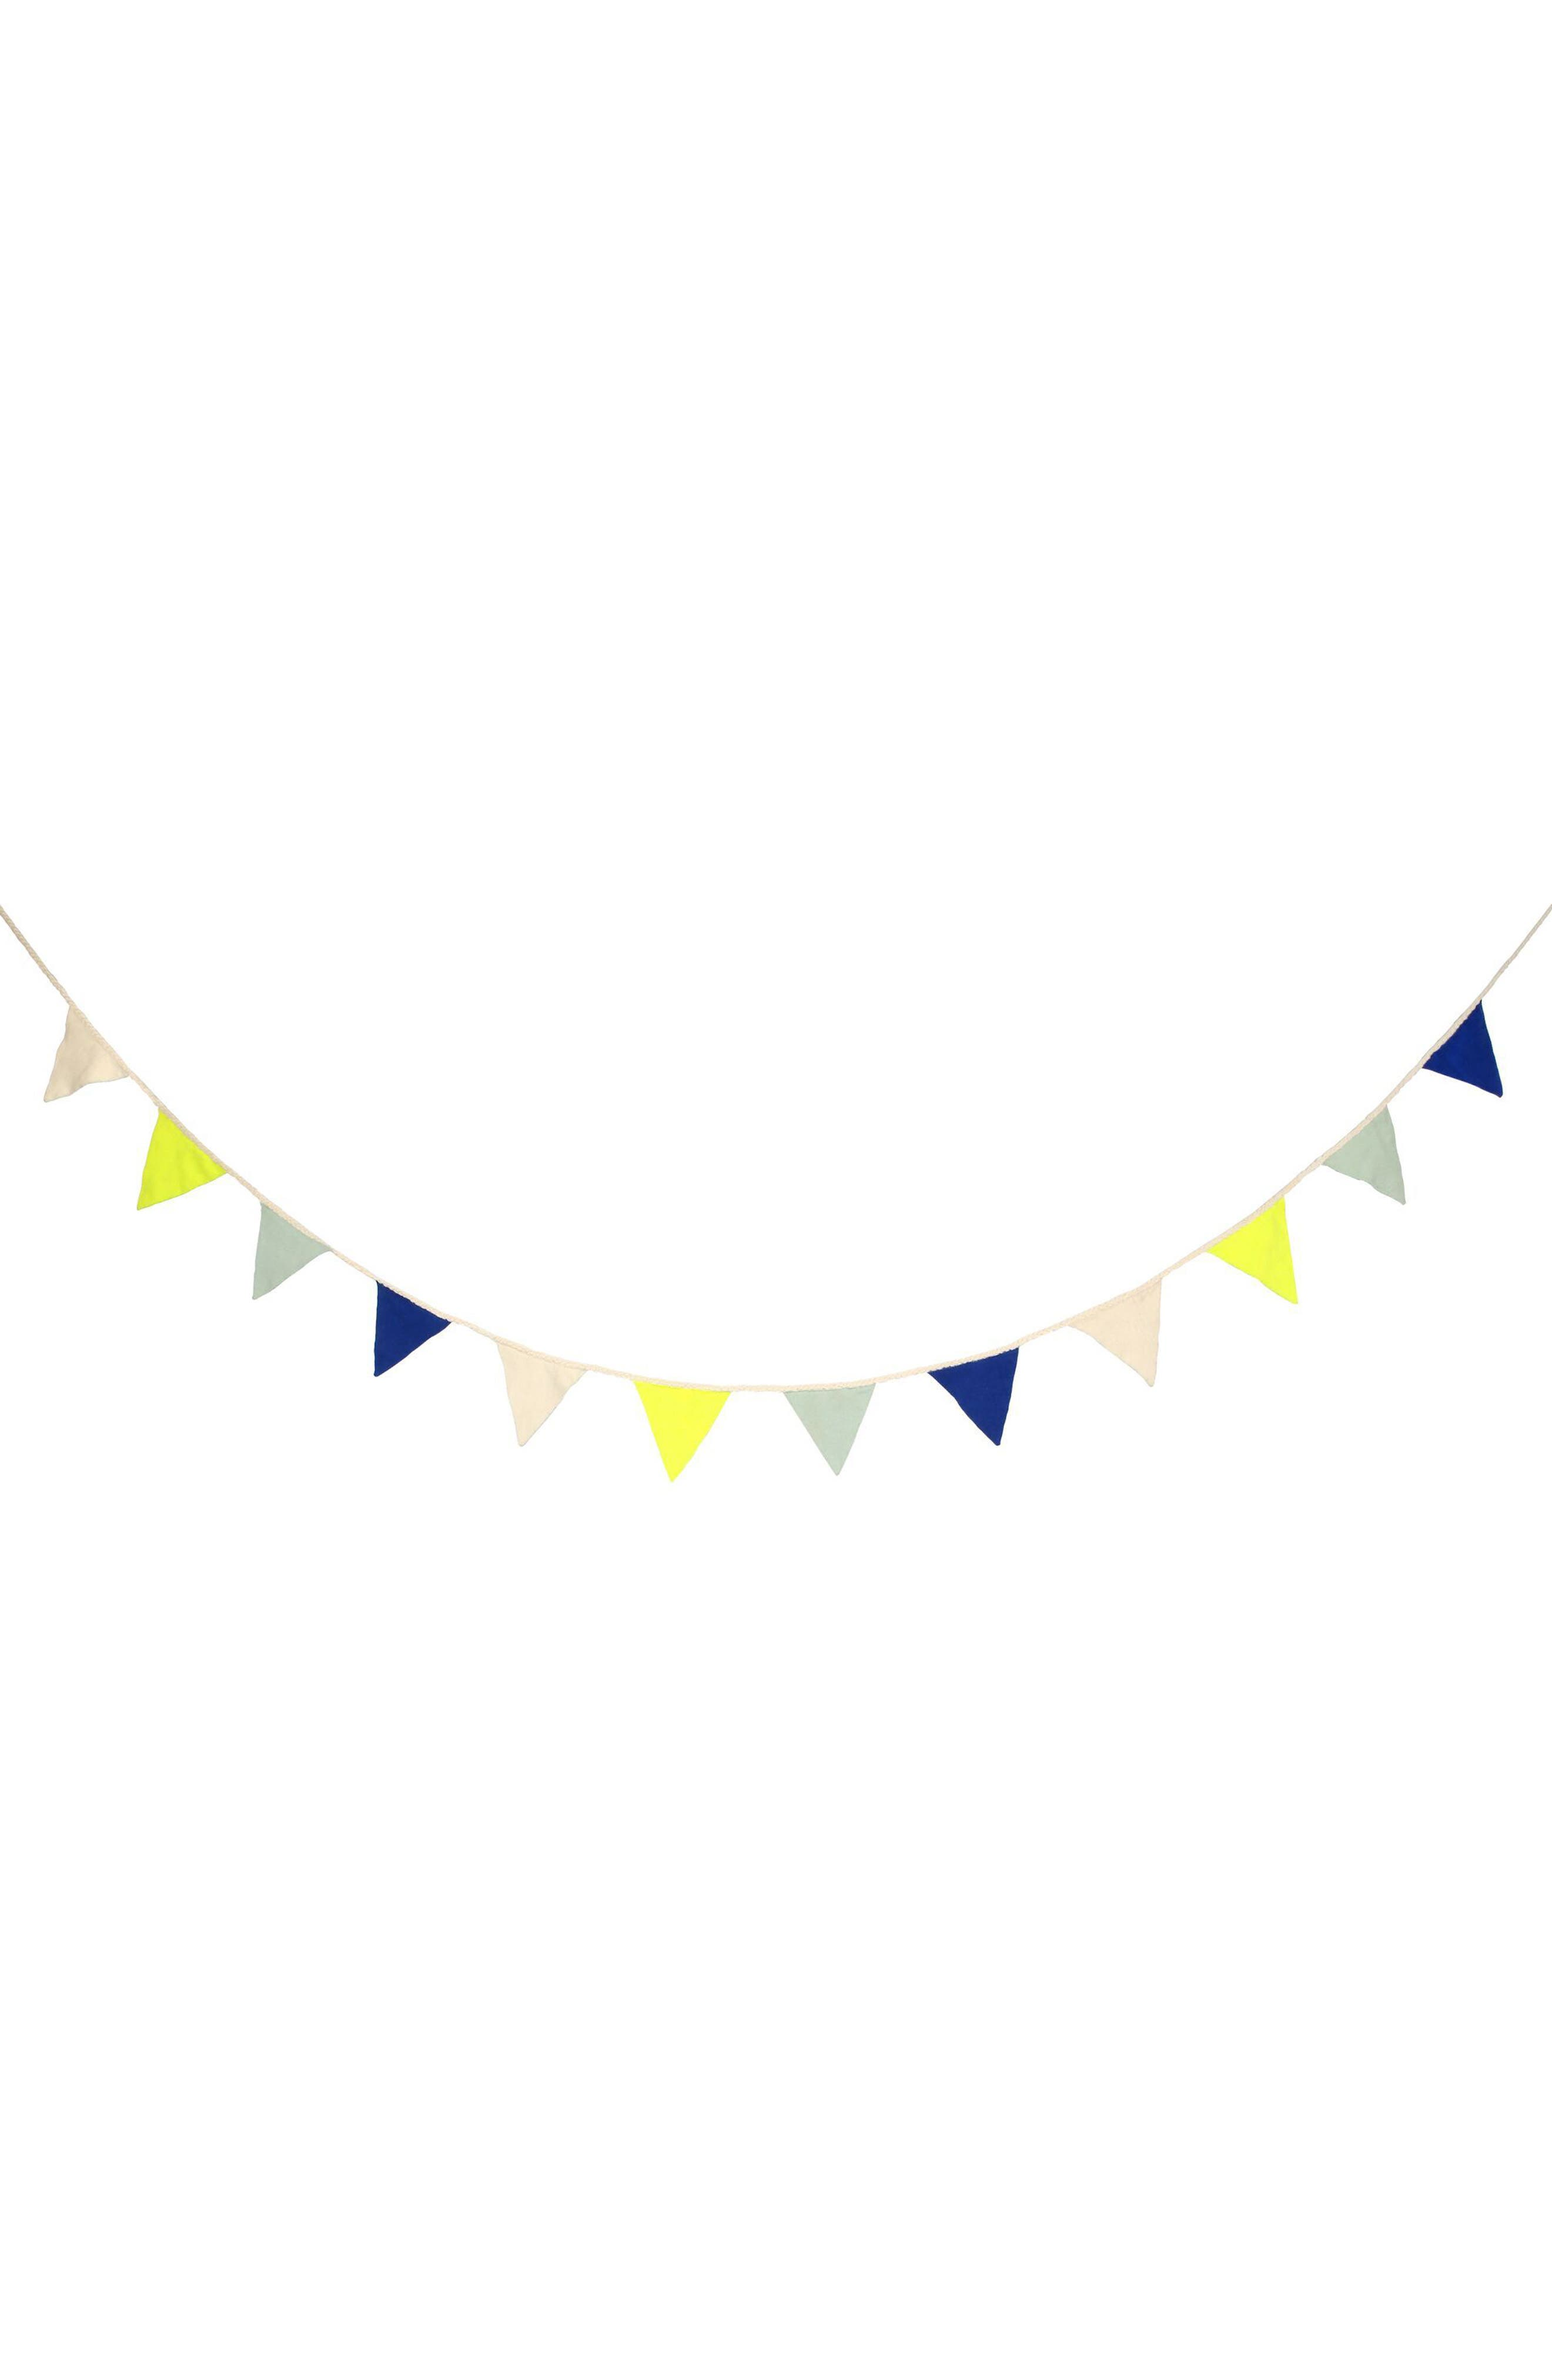 Organic Cotton Flag Garland,                             Main thumbnail 1, color,                             400